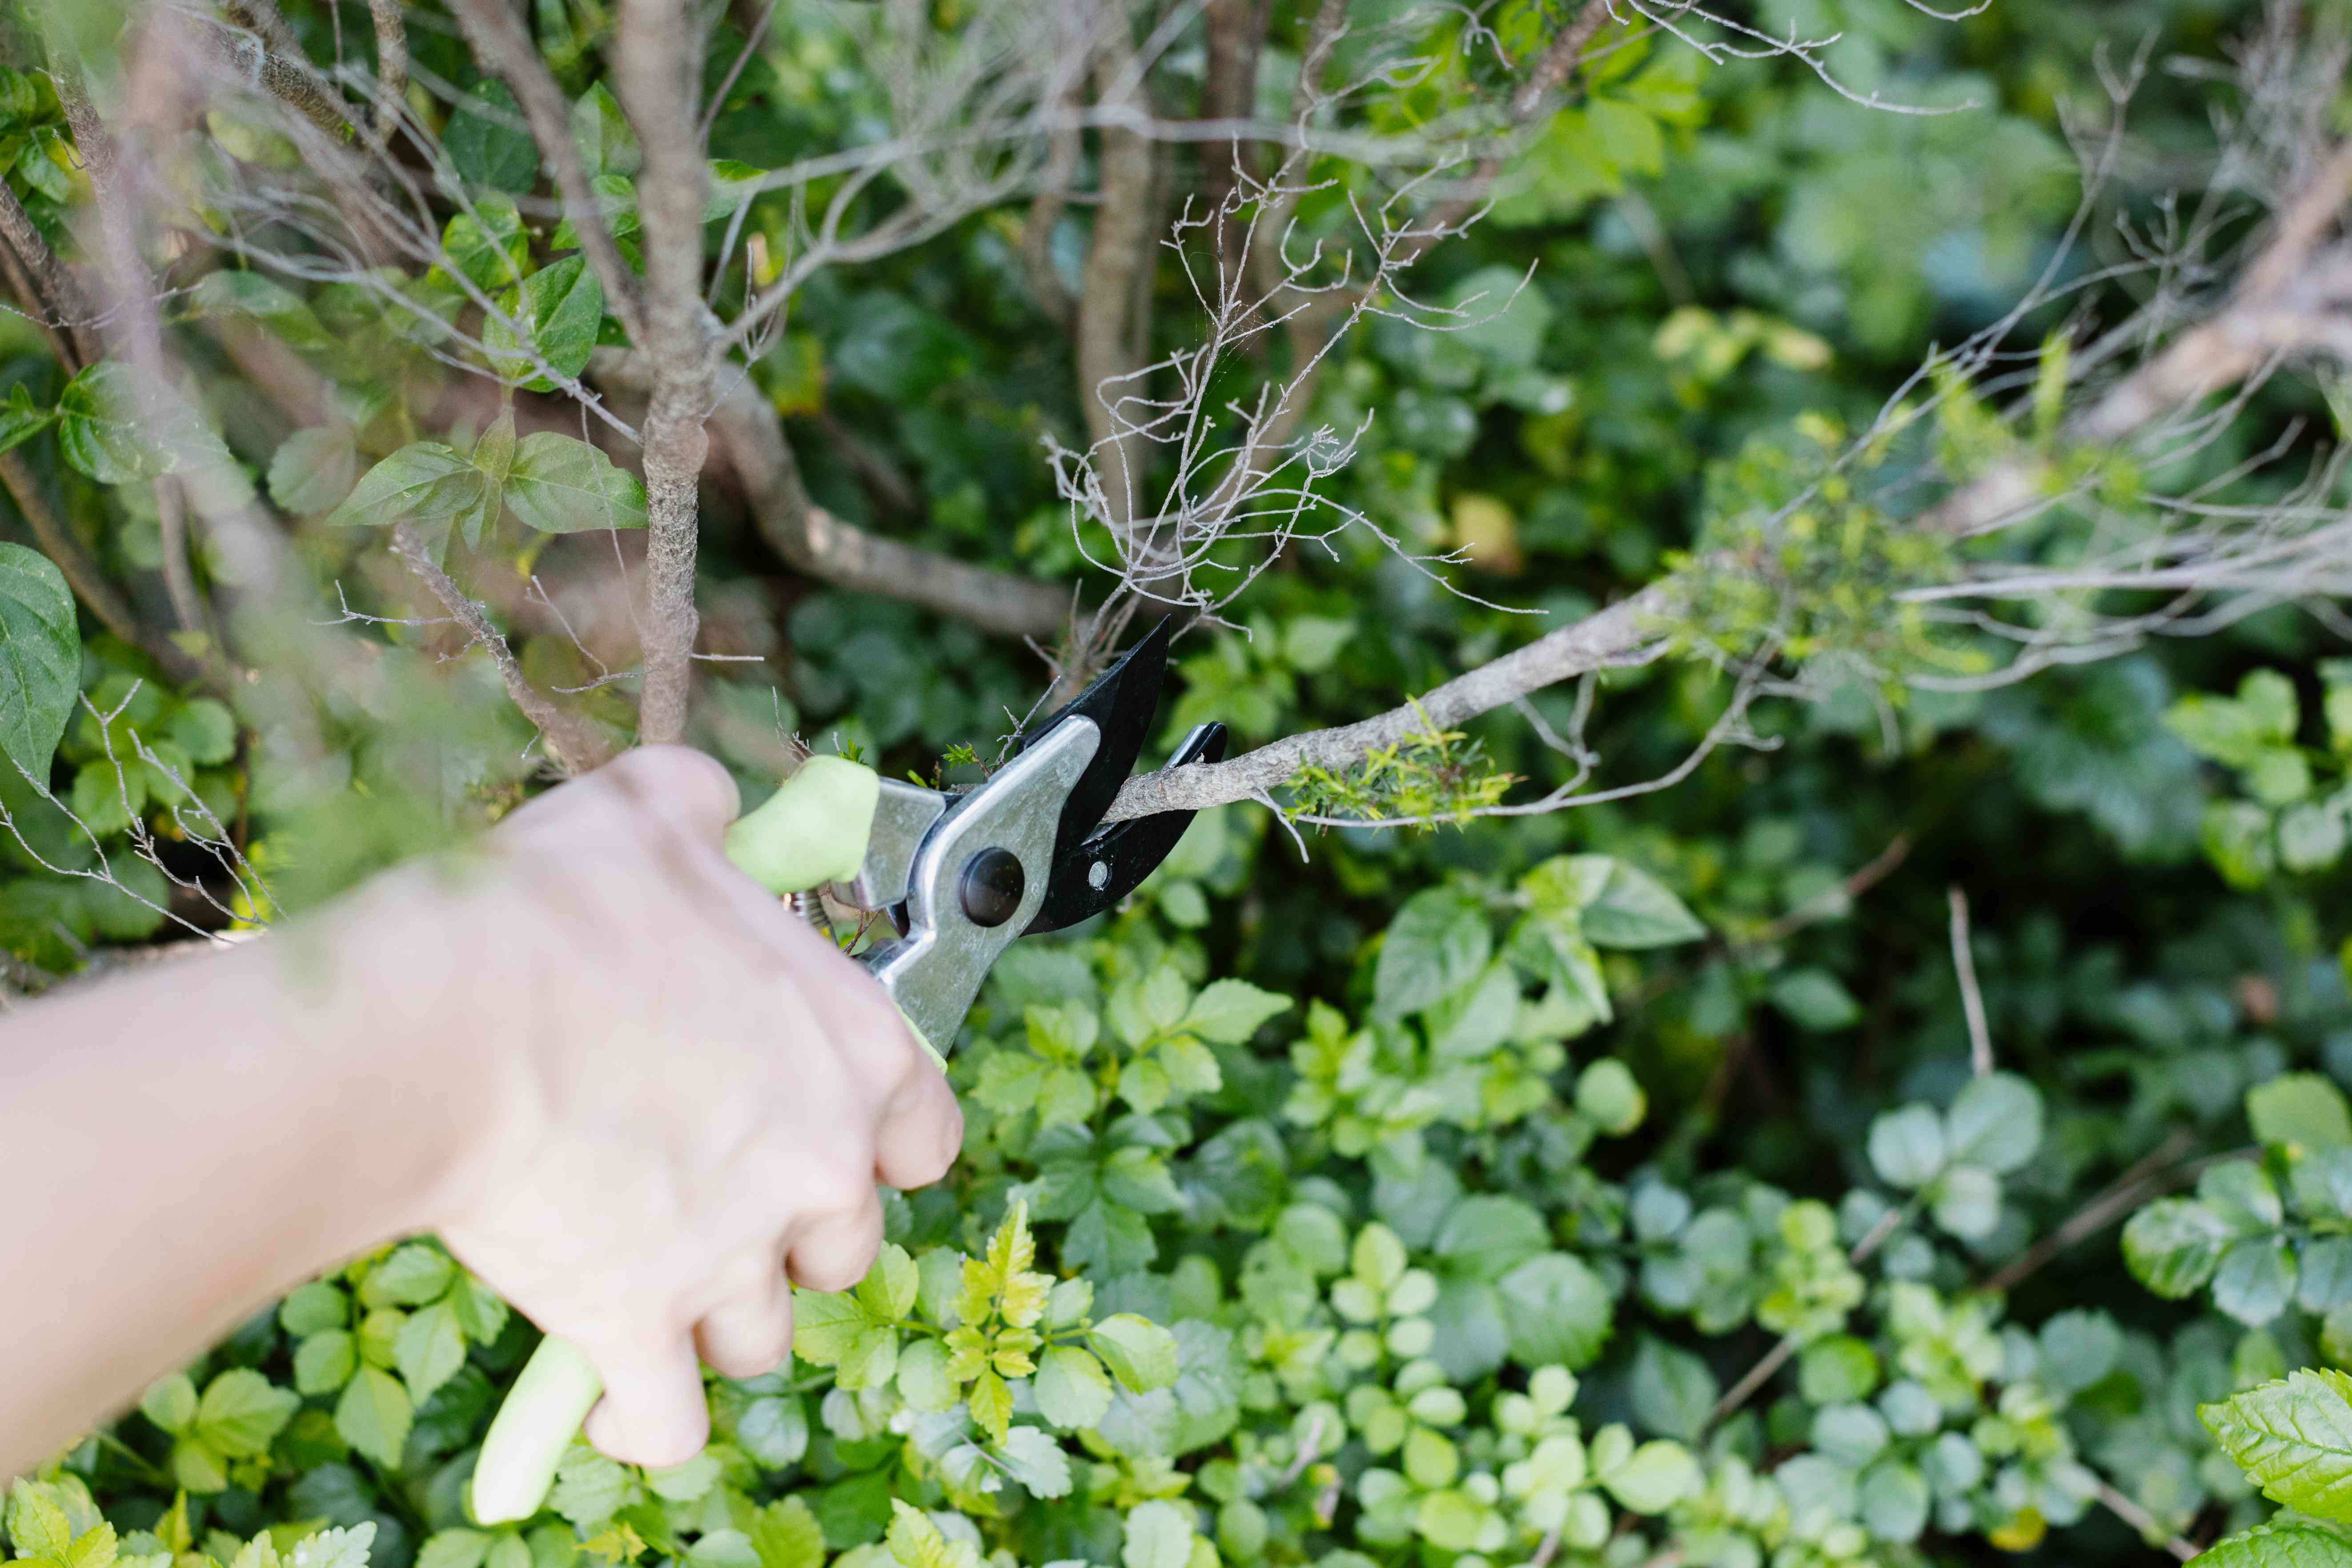 Evergreen shrub with dead branches being cut off with handheld pruners